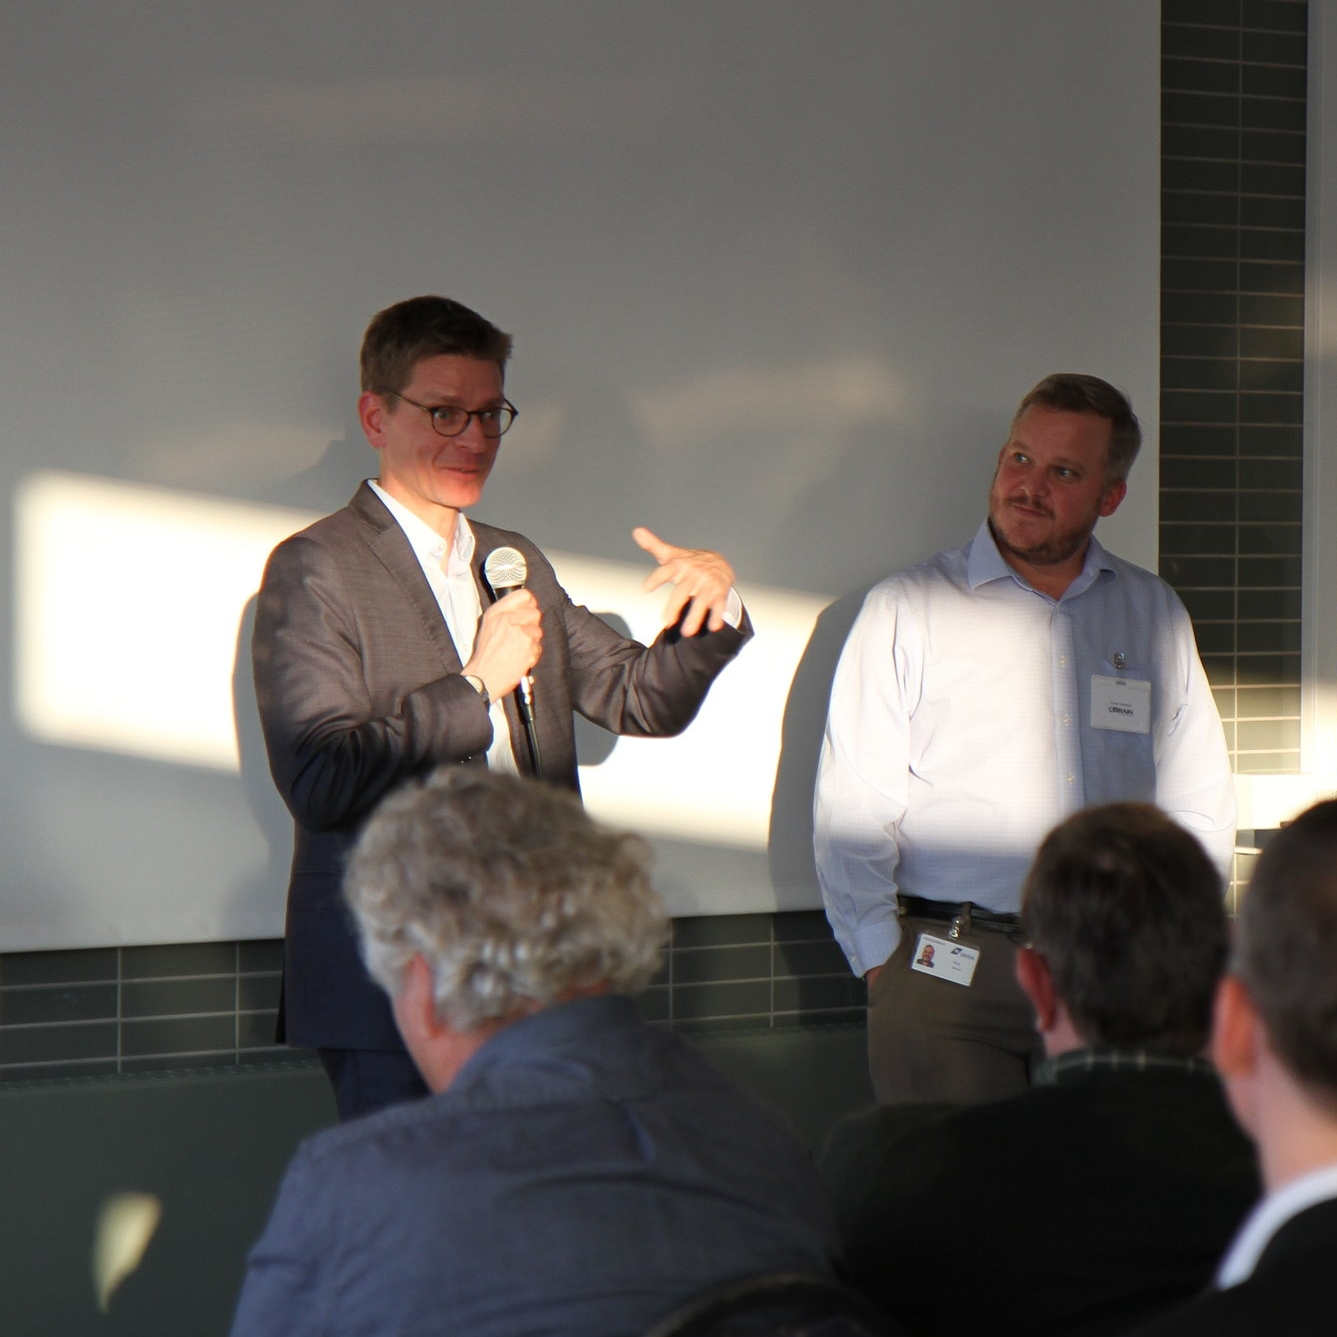 Lars Frelle-Petersen, CEO of The Agency of Digitisation (left) and Greg Godbout, CEO and Co-Founder cBrain North America.